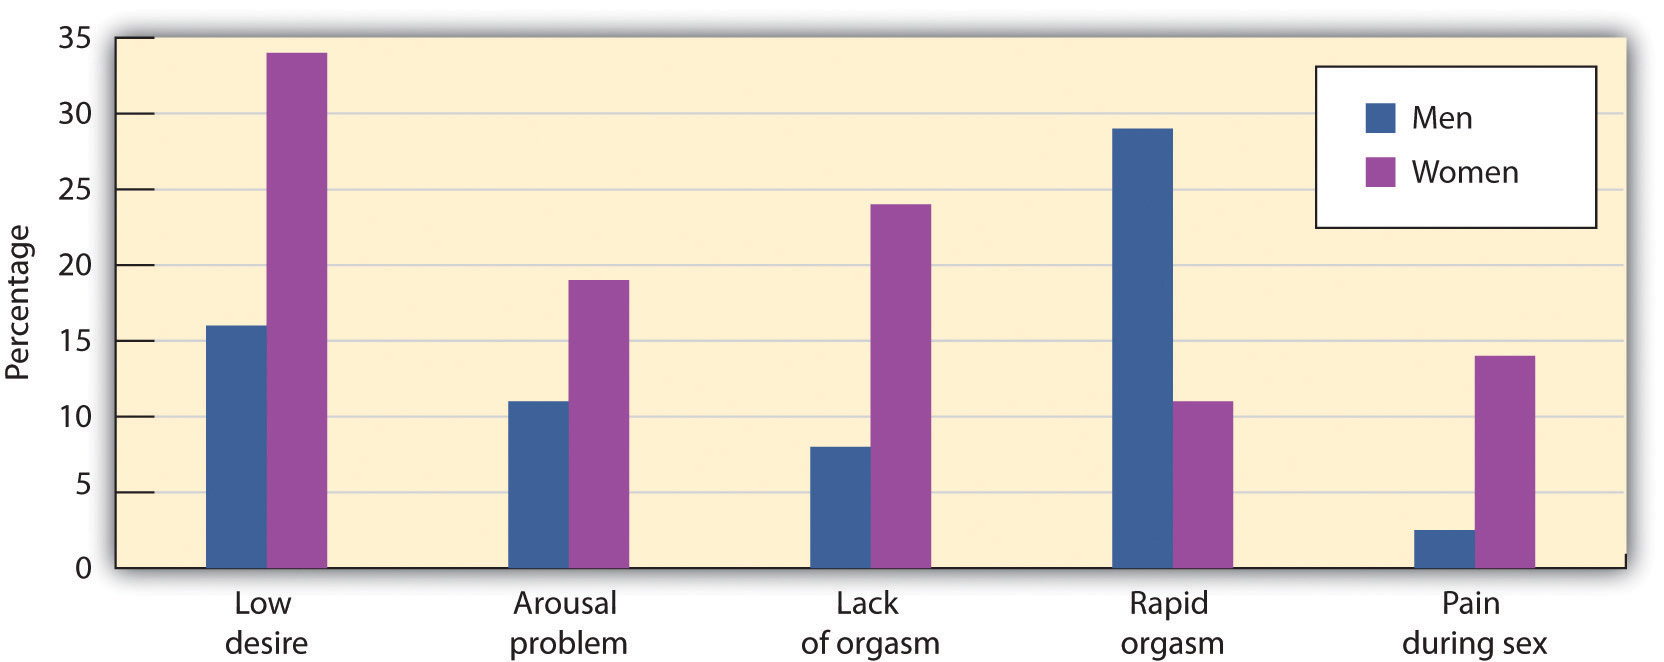 Sexual Dysfunction in Men and Women. Long description available.